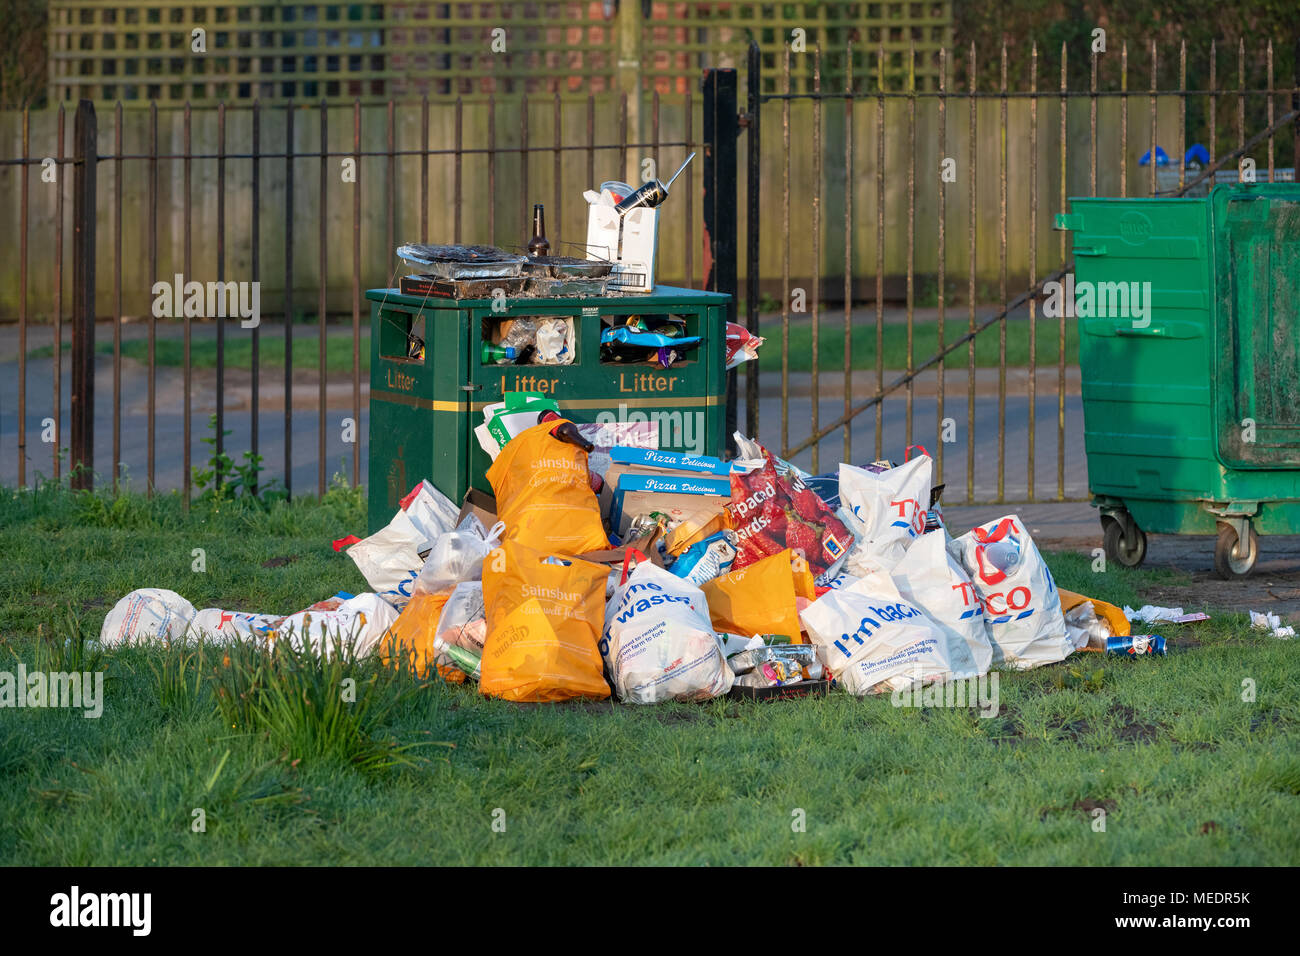 Overflowing litter bin in south park after a sunny day. Oxford, Oxfordshire, England - Stock Image